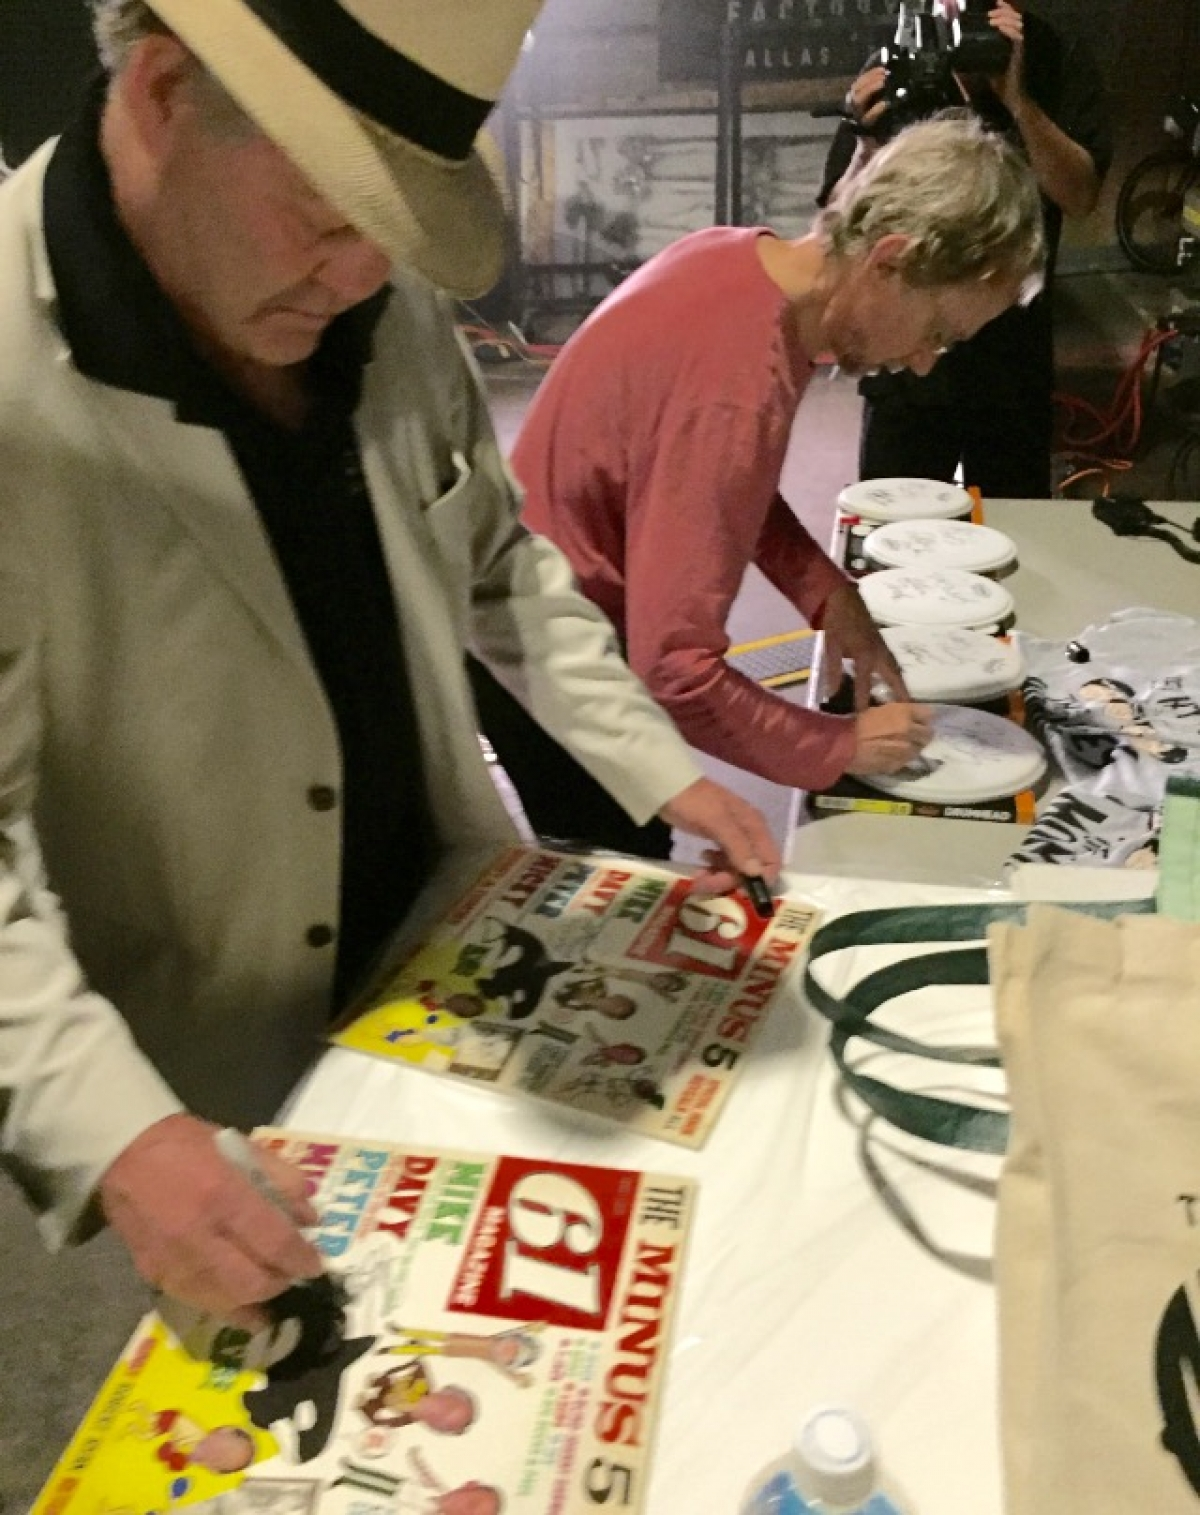 Micky and Peter signing Minus 5 albums!